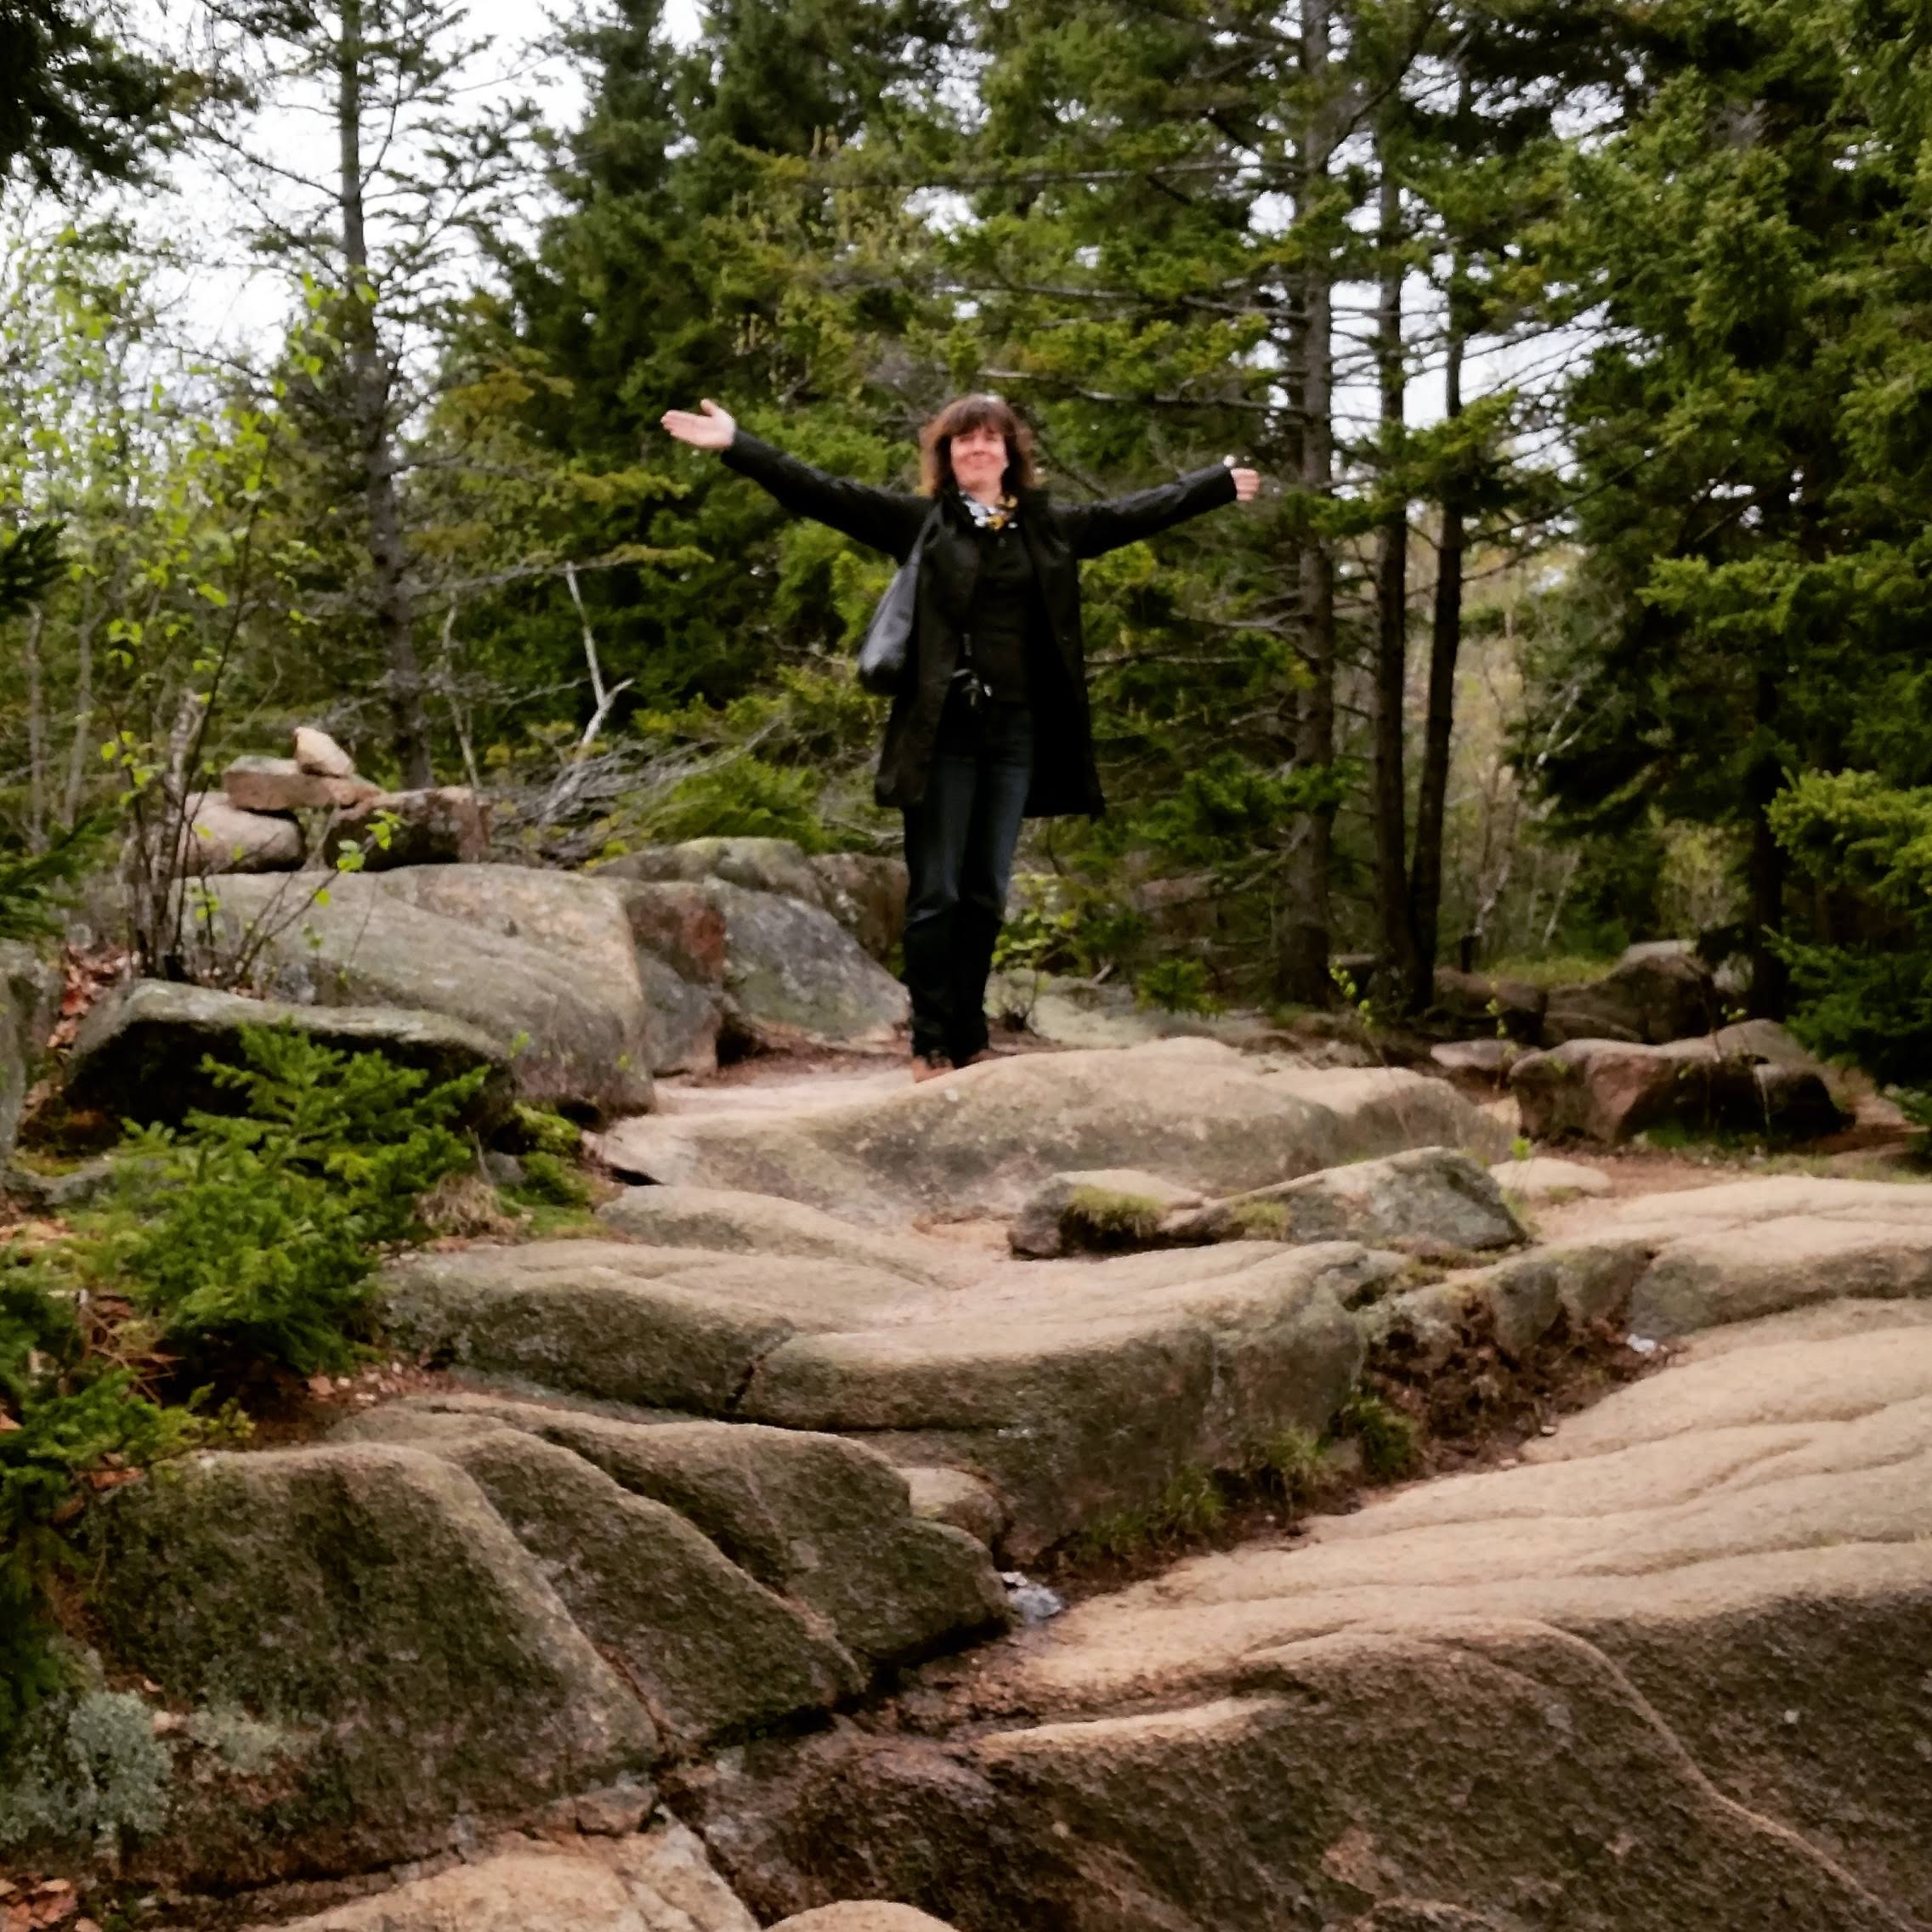 Woman standing on a reddish rock in an evergreen forest, spreading her arms in joy